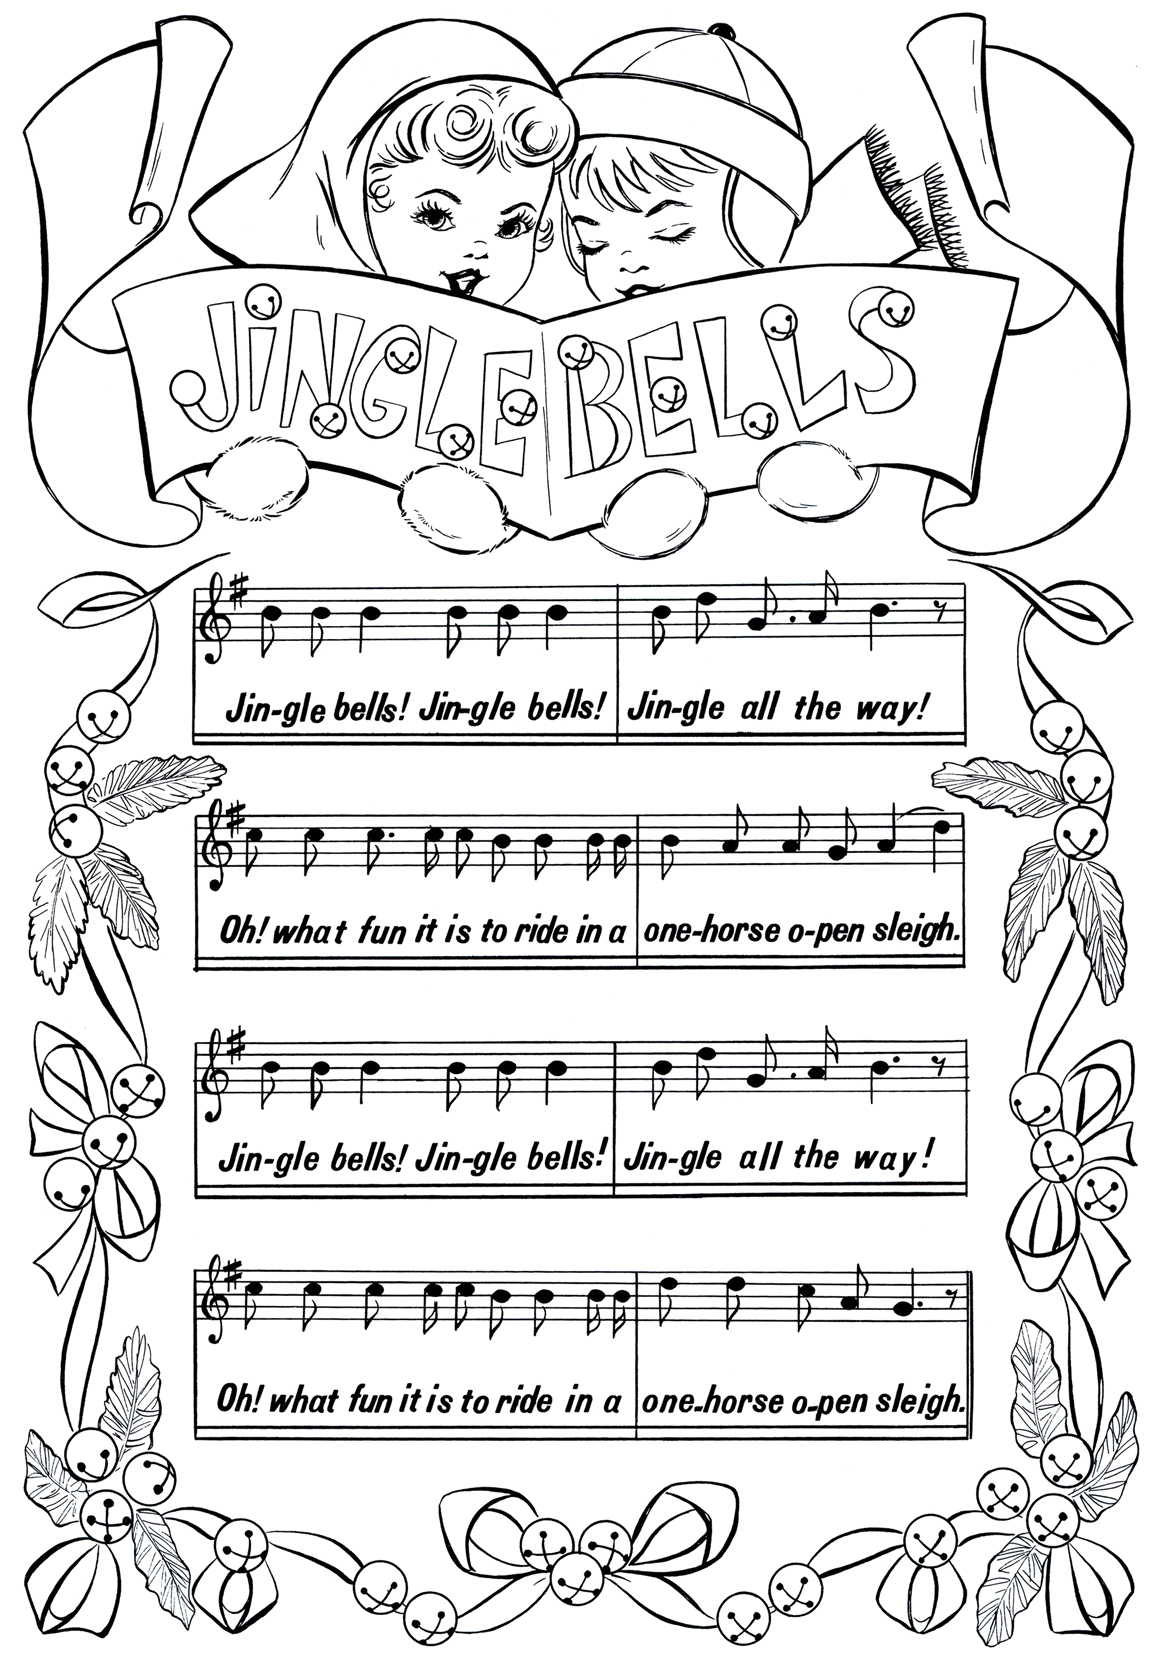 picture about Jingle Bells Lyrics Printable named Printable Xmas Coloring Site - Jingle Bells - The